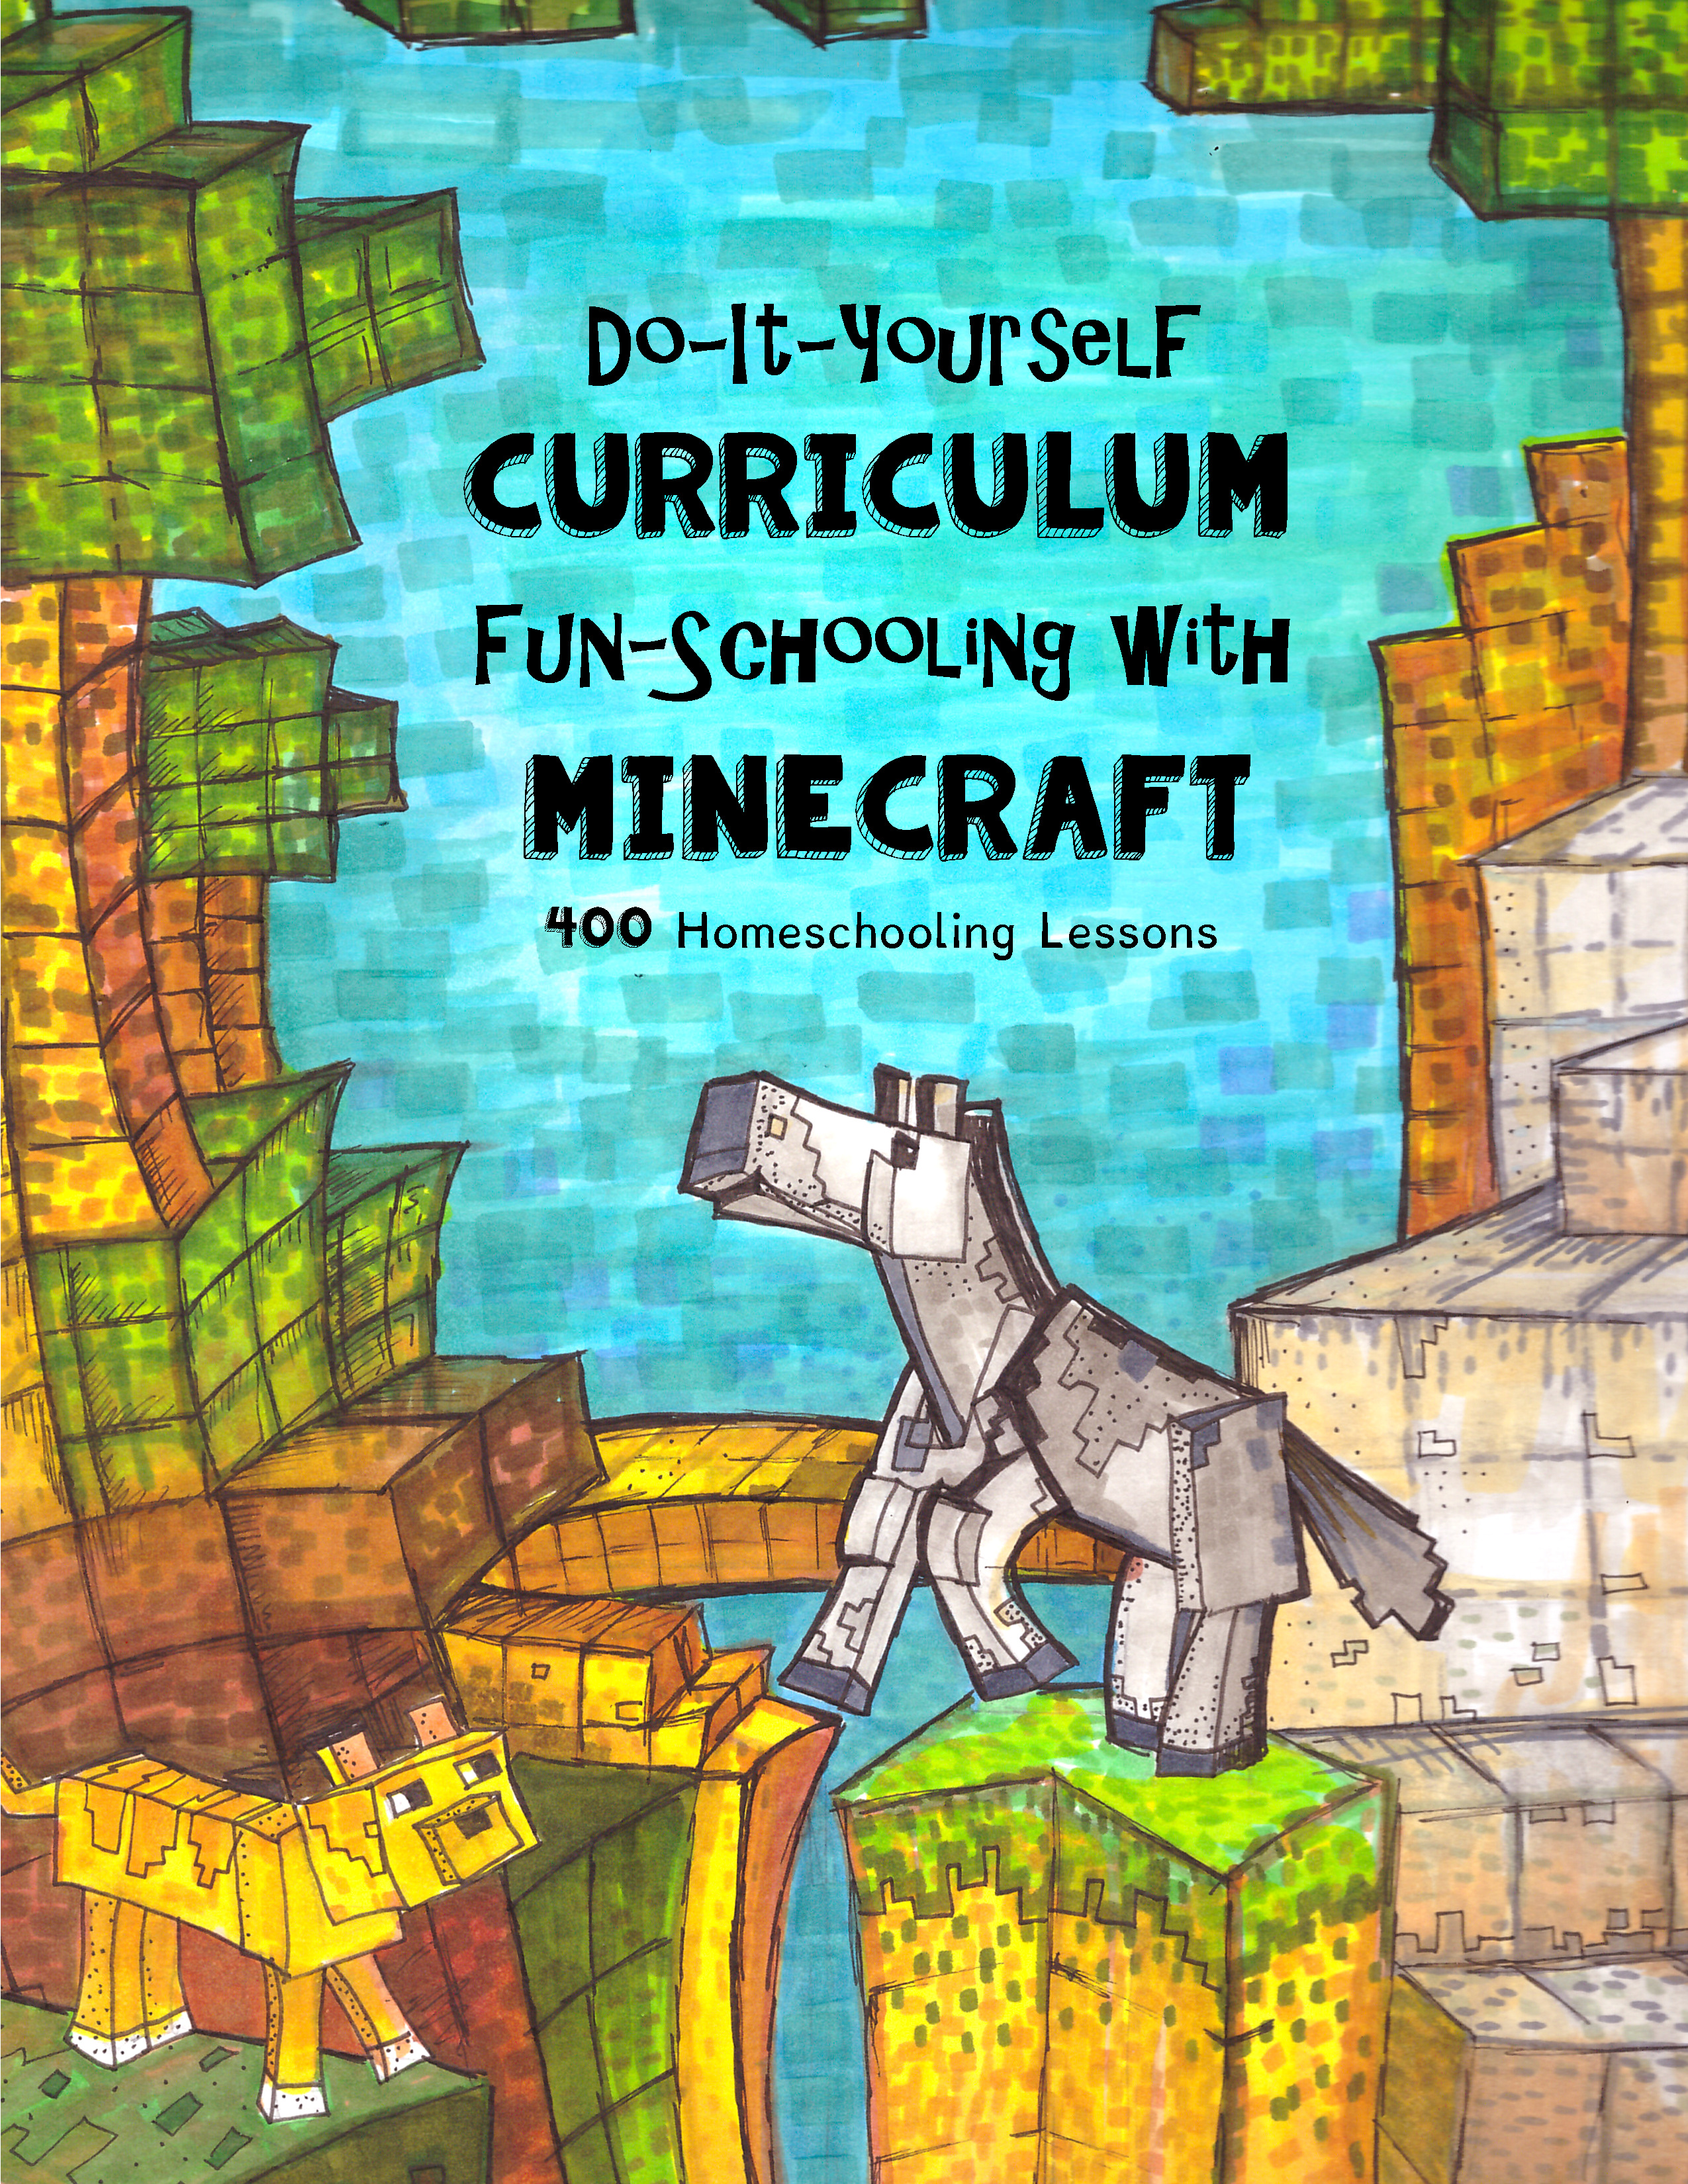 What are the top 25 fun schooling books by the thinking tree help what are the top 25 fun schooling books by the thinking tree help for students with dyslexia adhd aspergers syndrome autism solutioingenieria Gallery